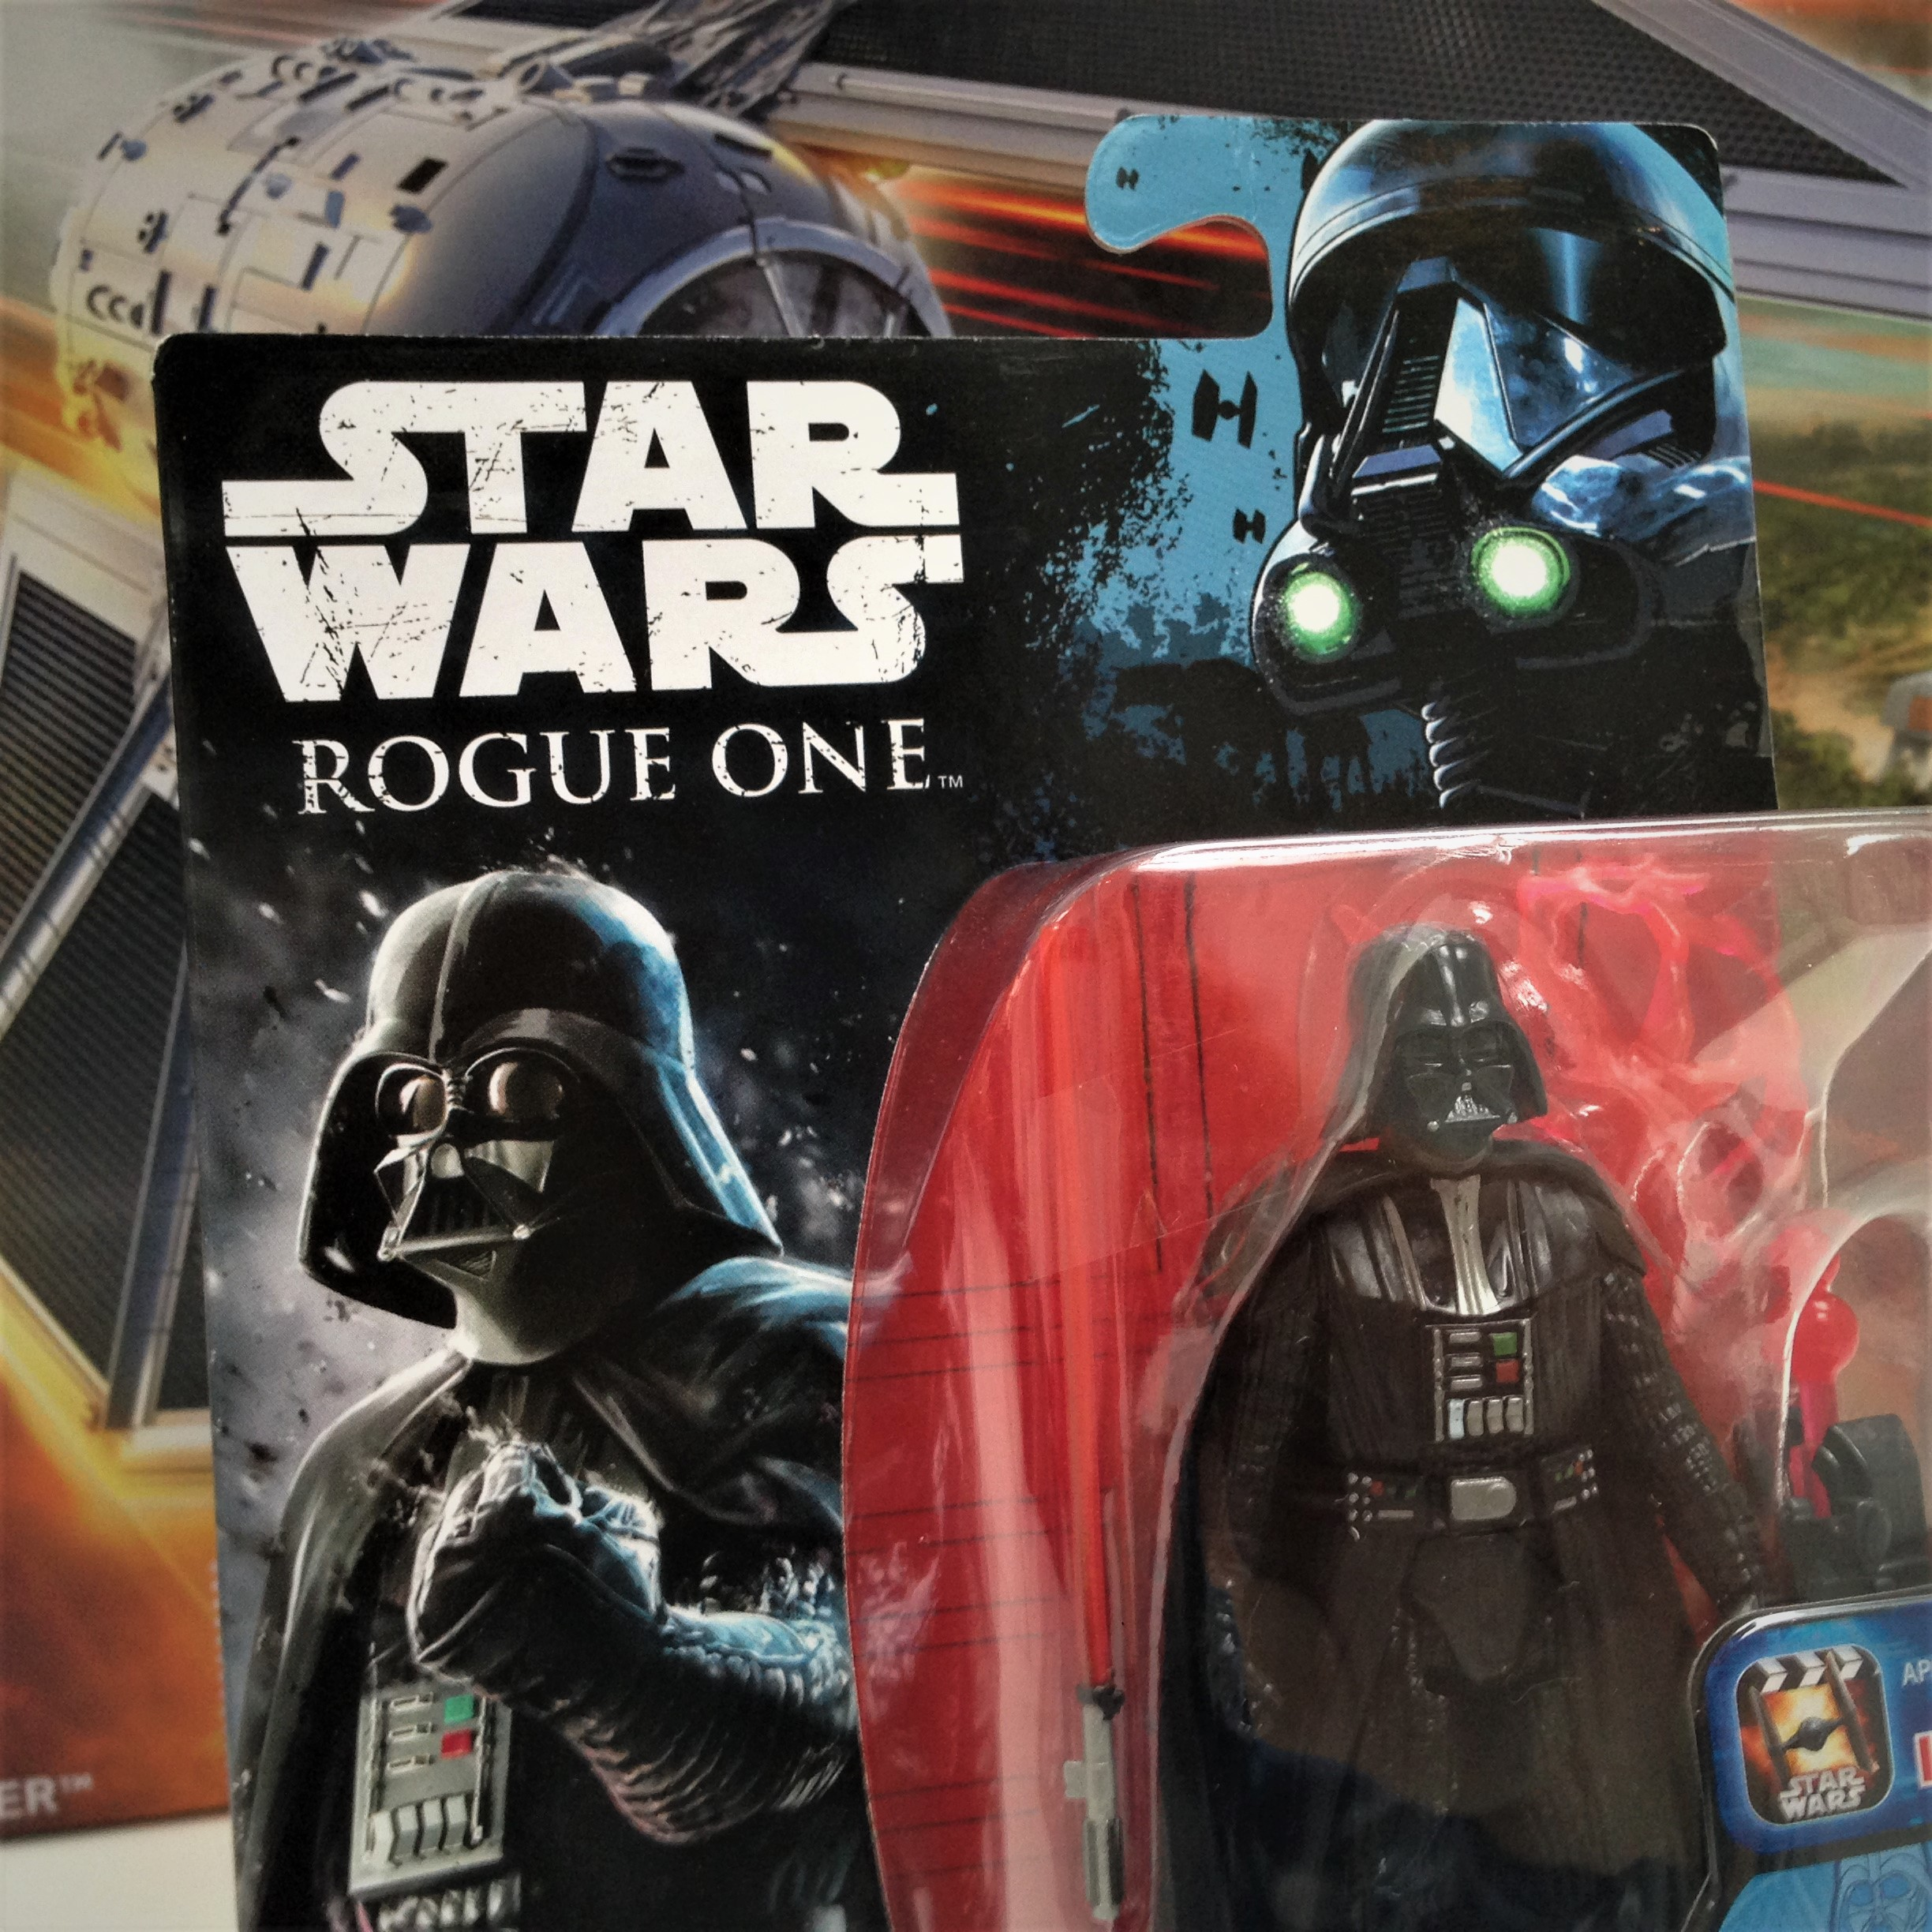 hasbro-fiktion-kultur-star-wars-rogue-one-a-star-wars-story-tie-striker-darth-vader-6